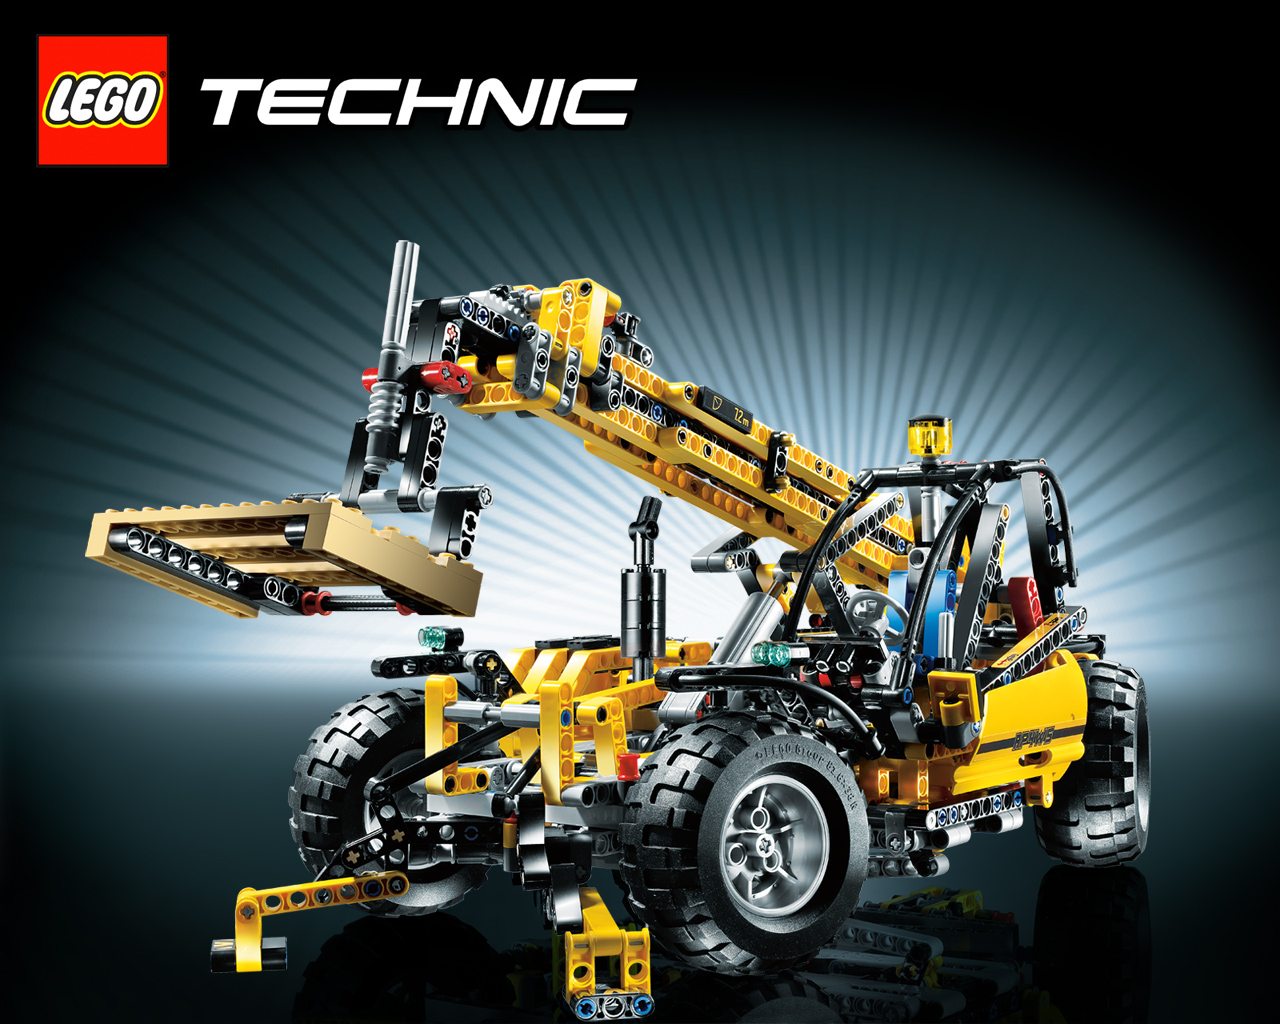 lego technic free desktop wallpapers for widescreen hd and mobile. Black Bedroom Furniture Sets. Home Design Ideas